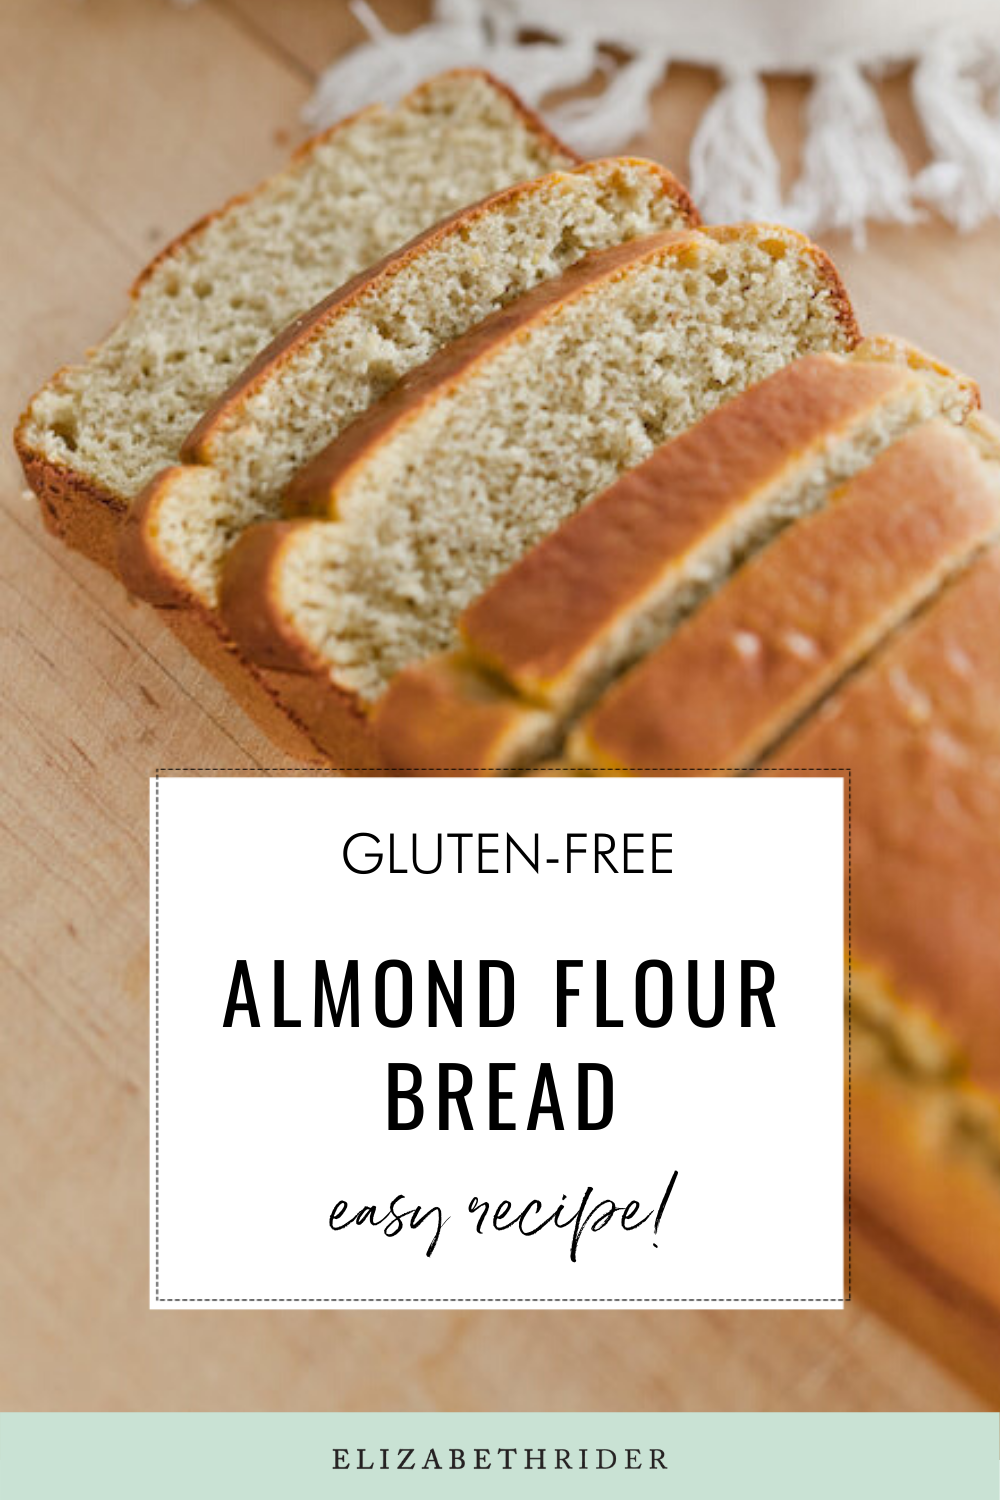 Healthy Almond Flour Bread Recipe Gluten Free Recipe In 2020 Almond Flour Bread Recipes Almond Flour Bread Recipes